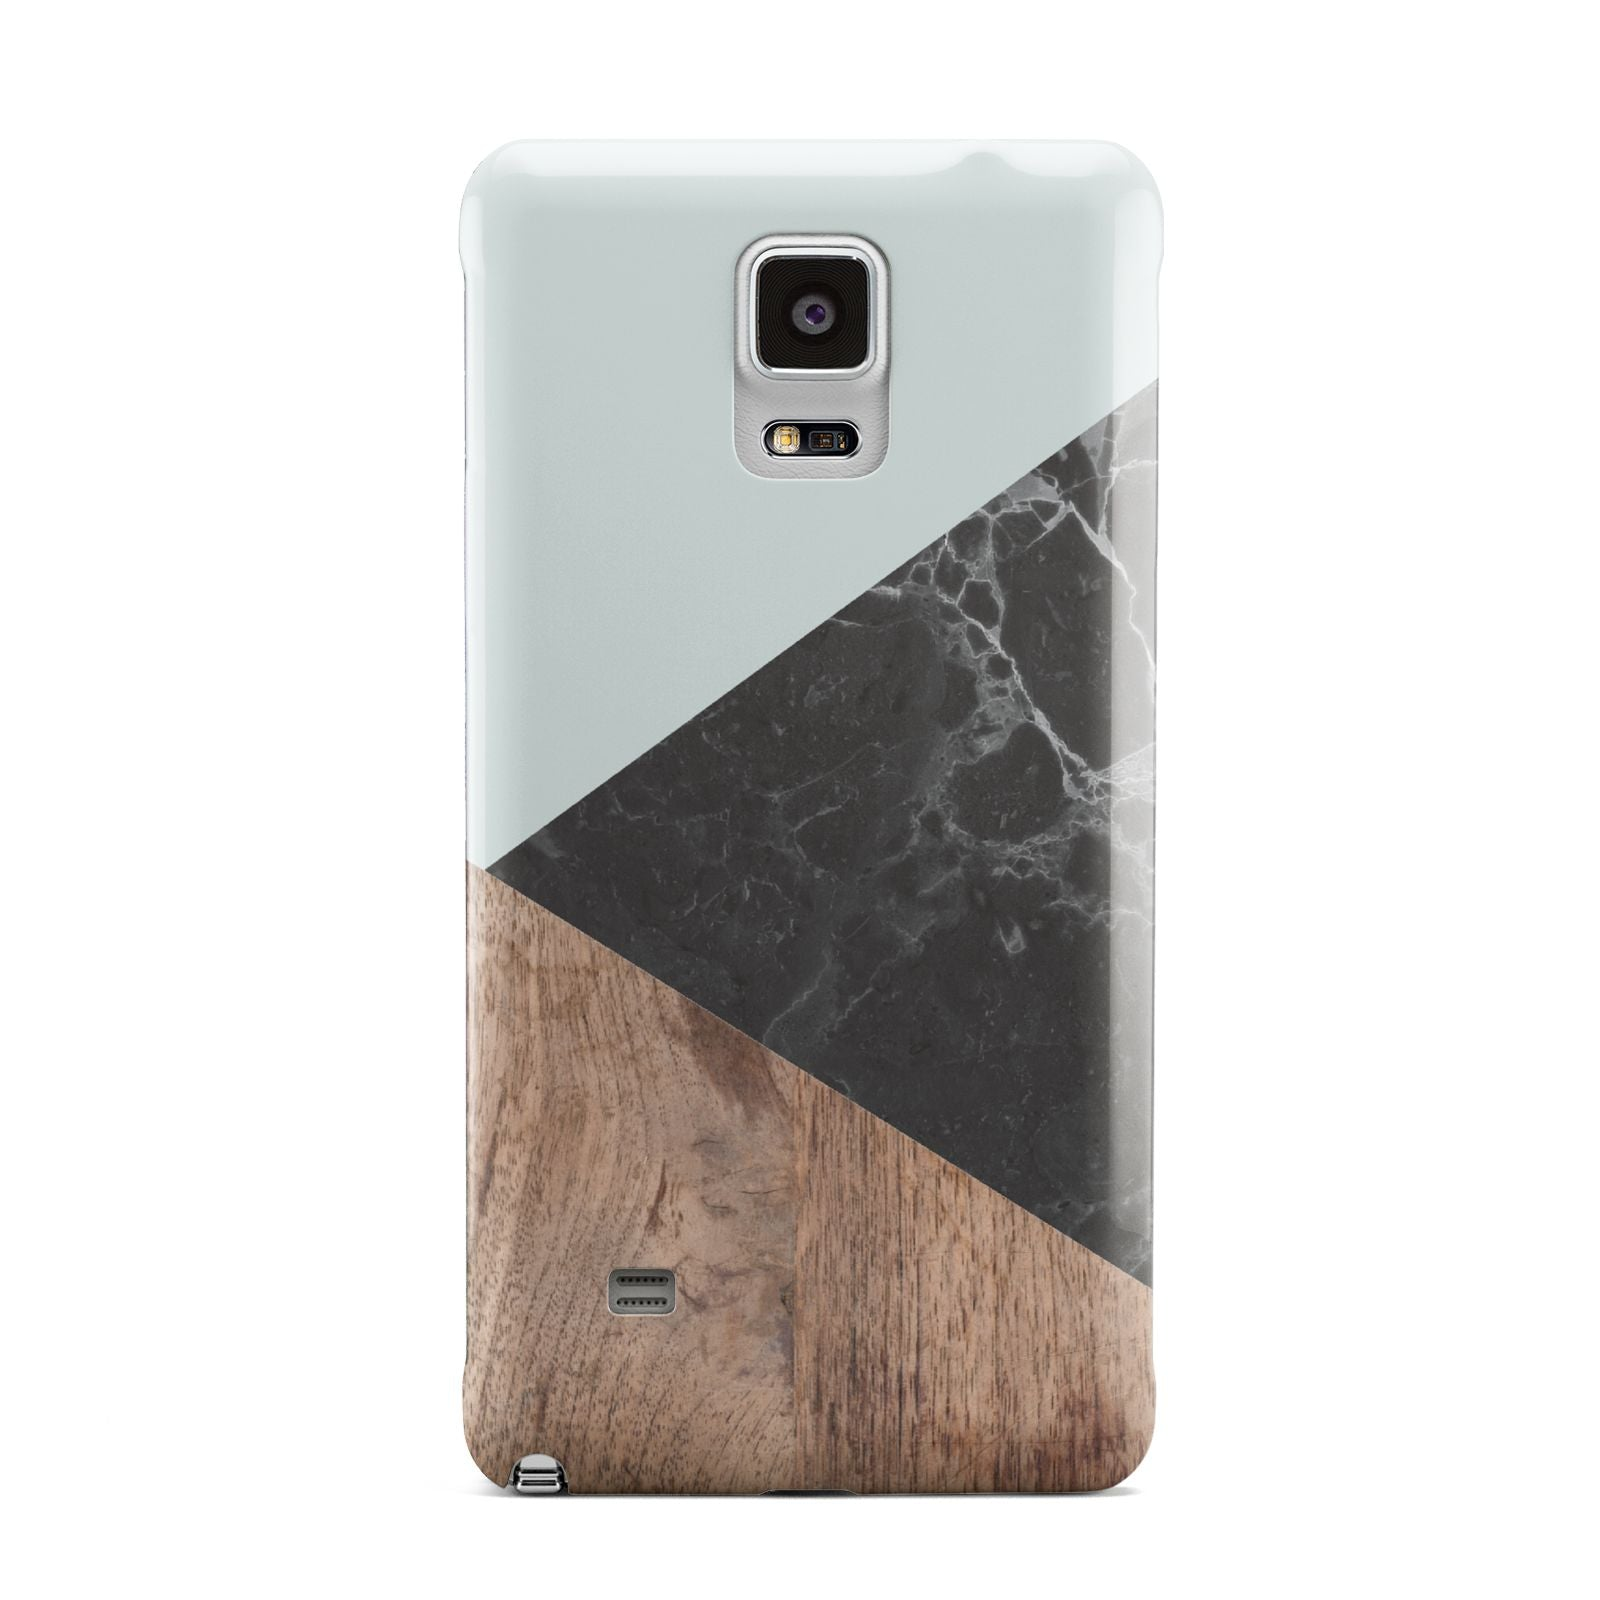 Marble Wood Geometric 2 Samsung Galaxy Note 4 Case